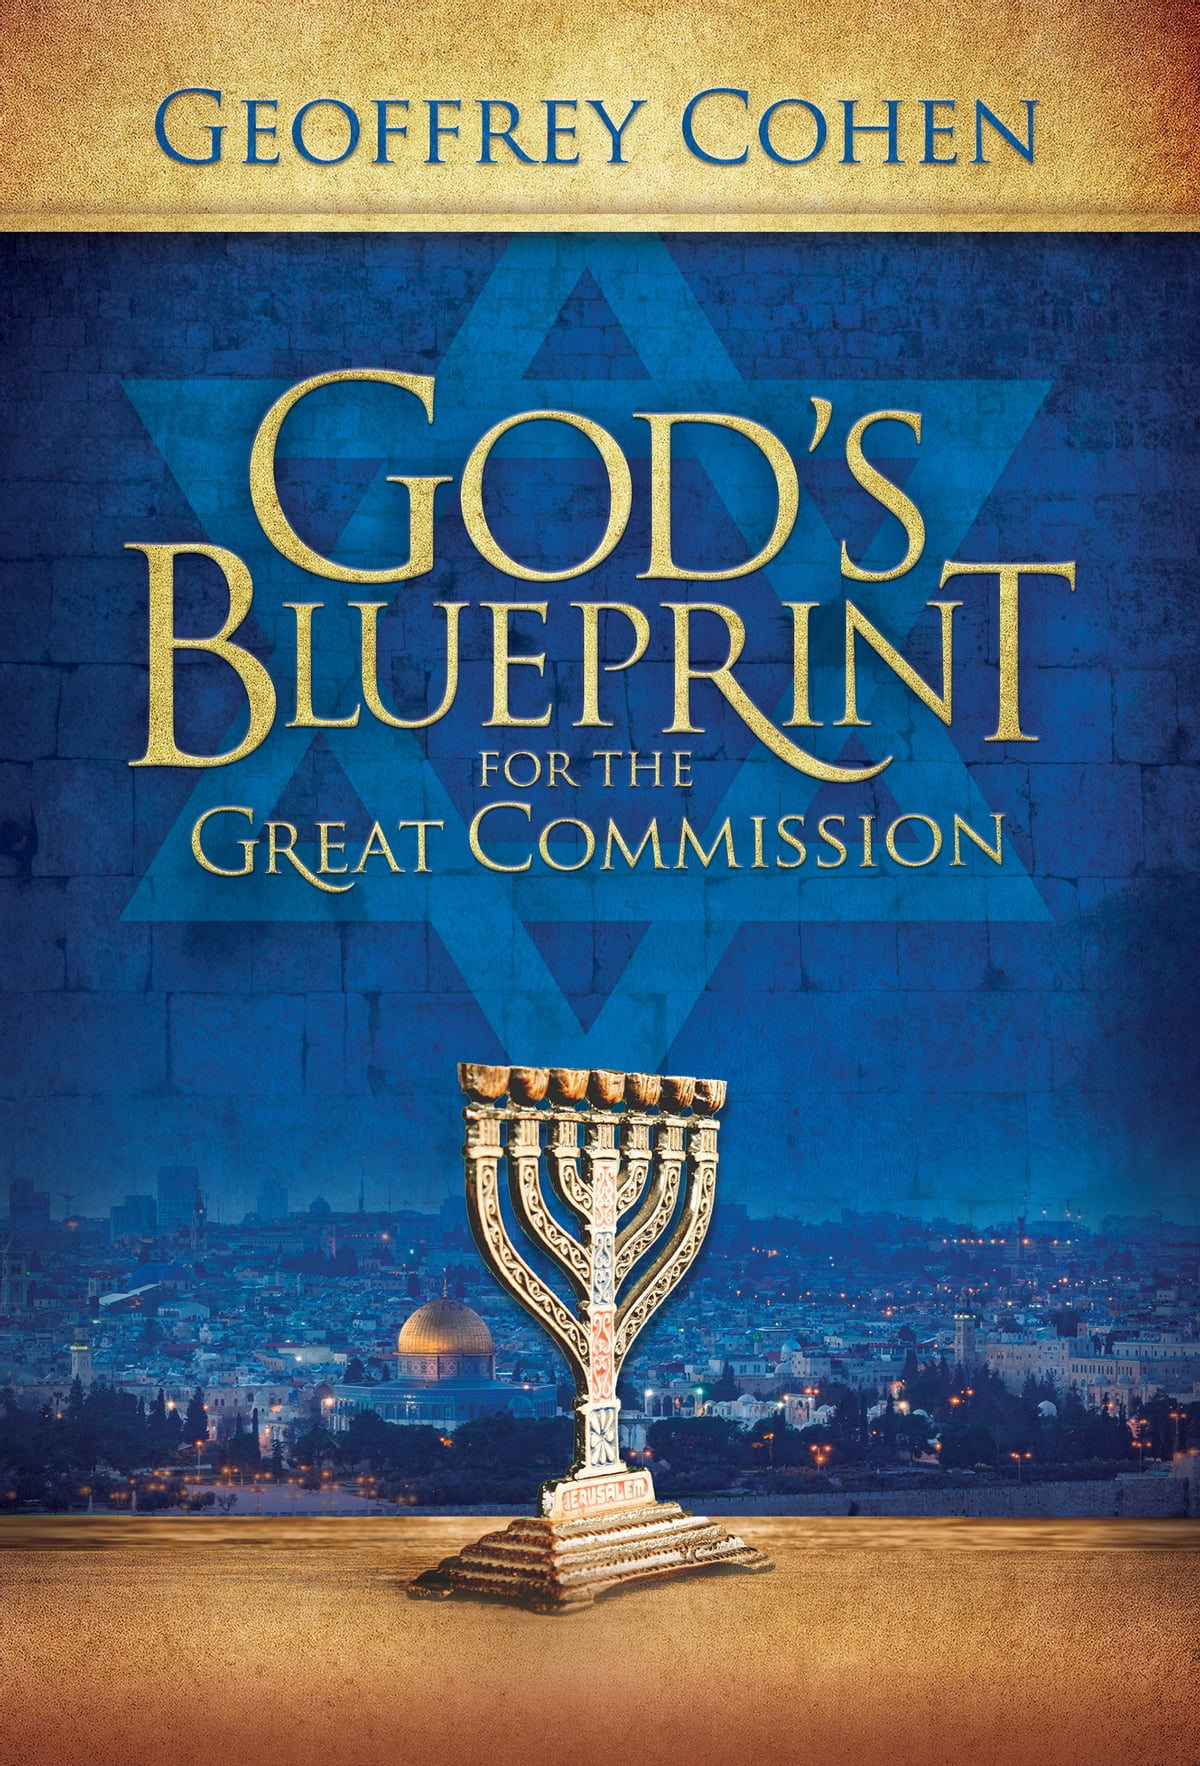 Gods blueprint for the great commission ebook by geoffrey cohen gods blueprint for the great commission ebook by geoffrey cohen 9781945529122 rakuten kobo malvernweather